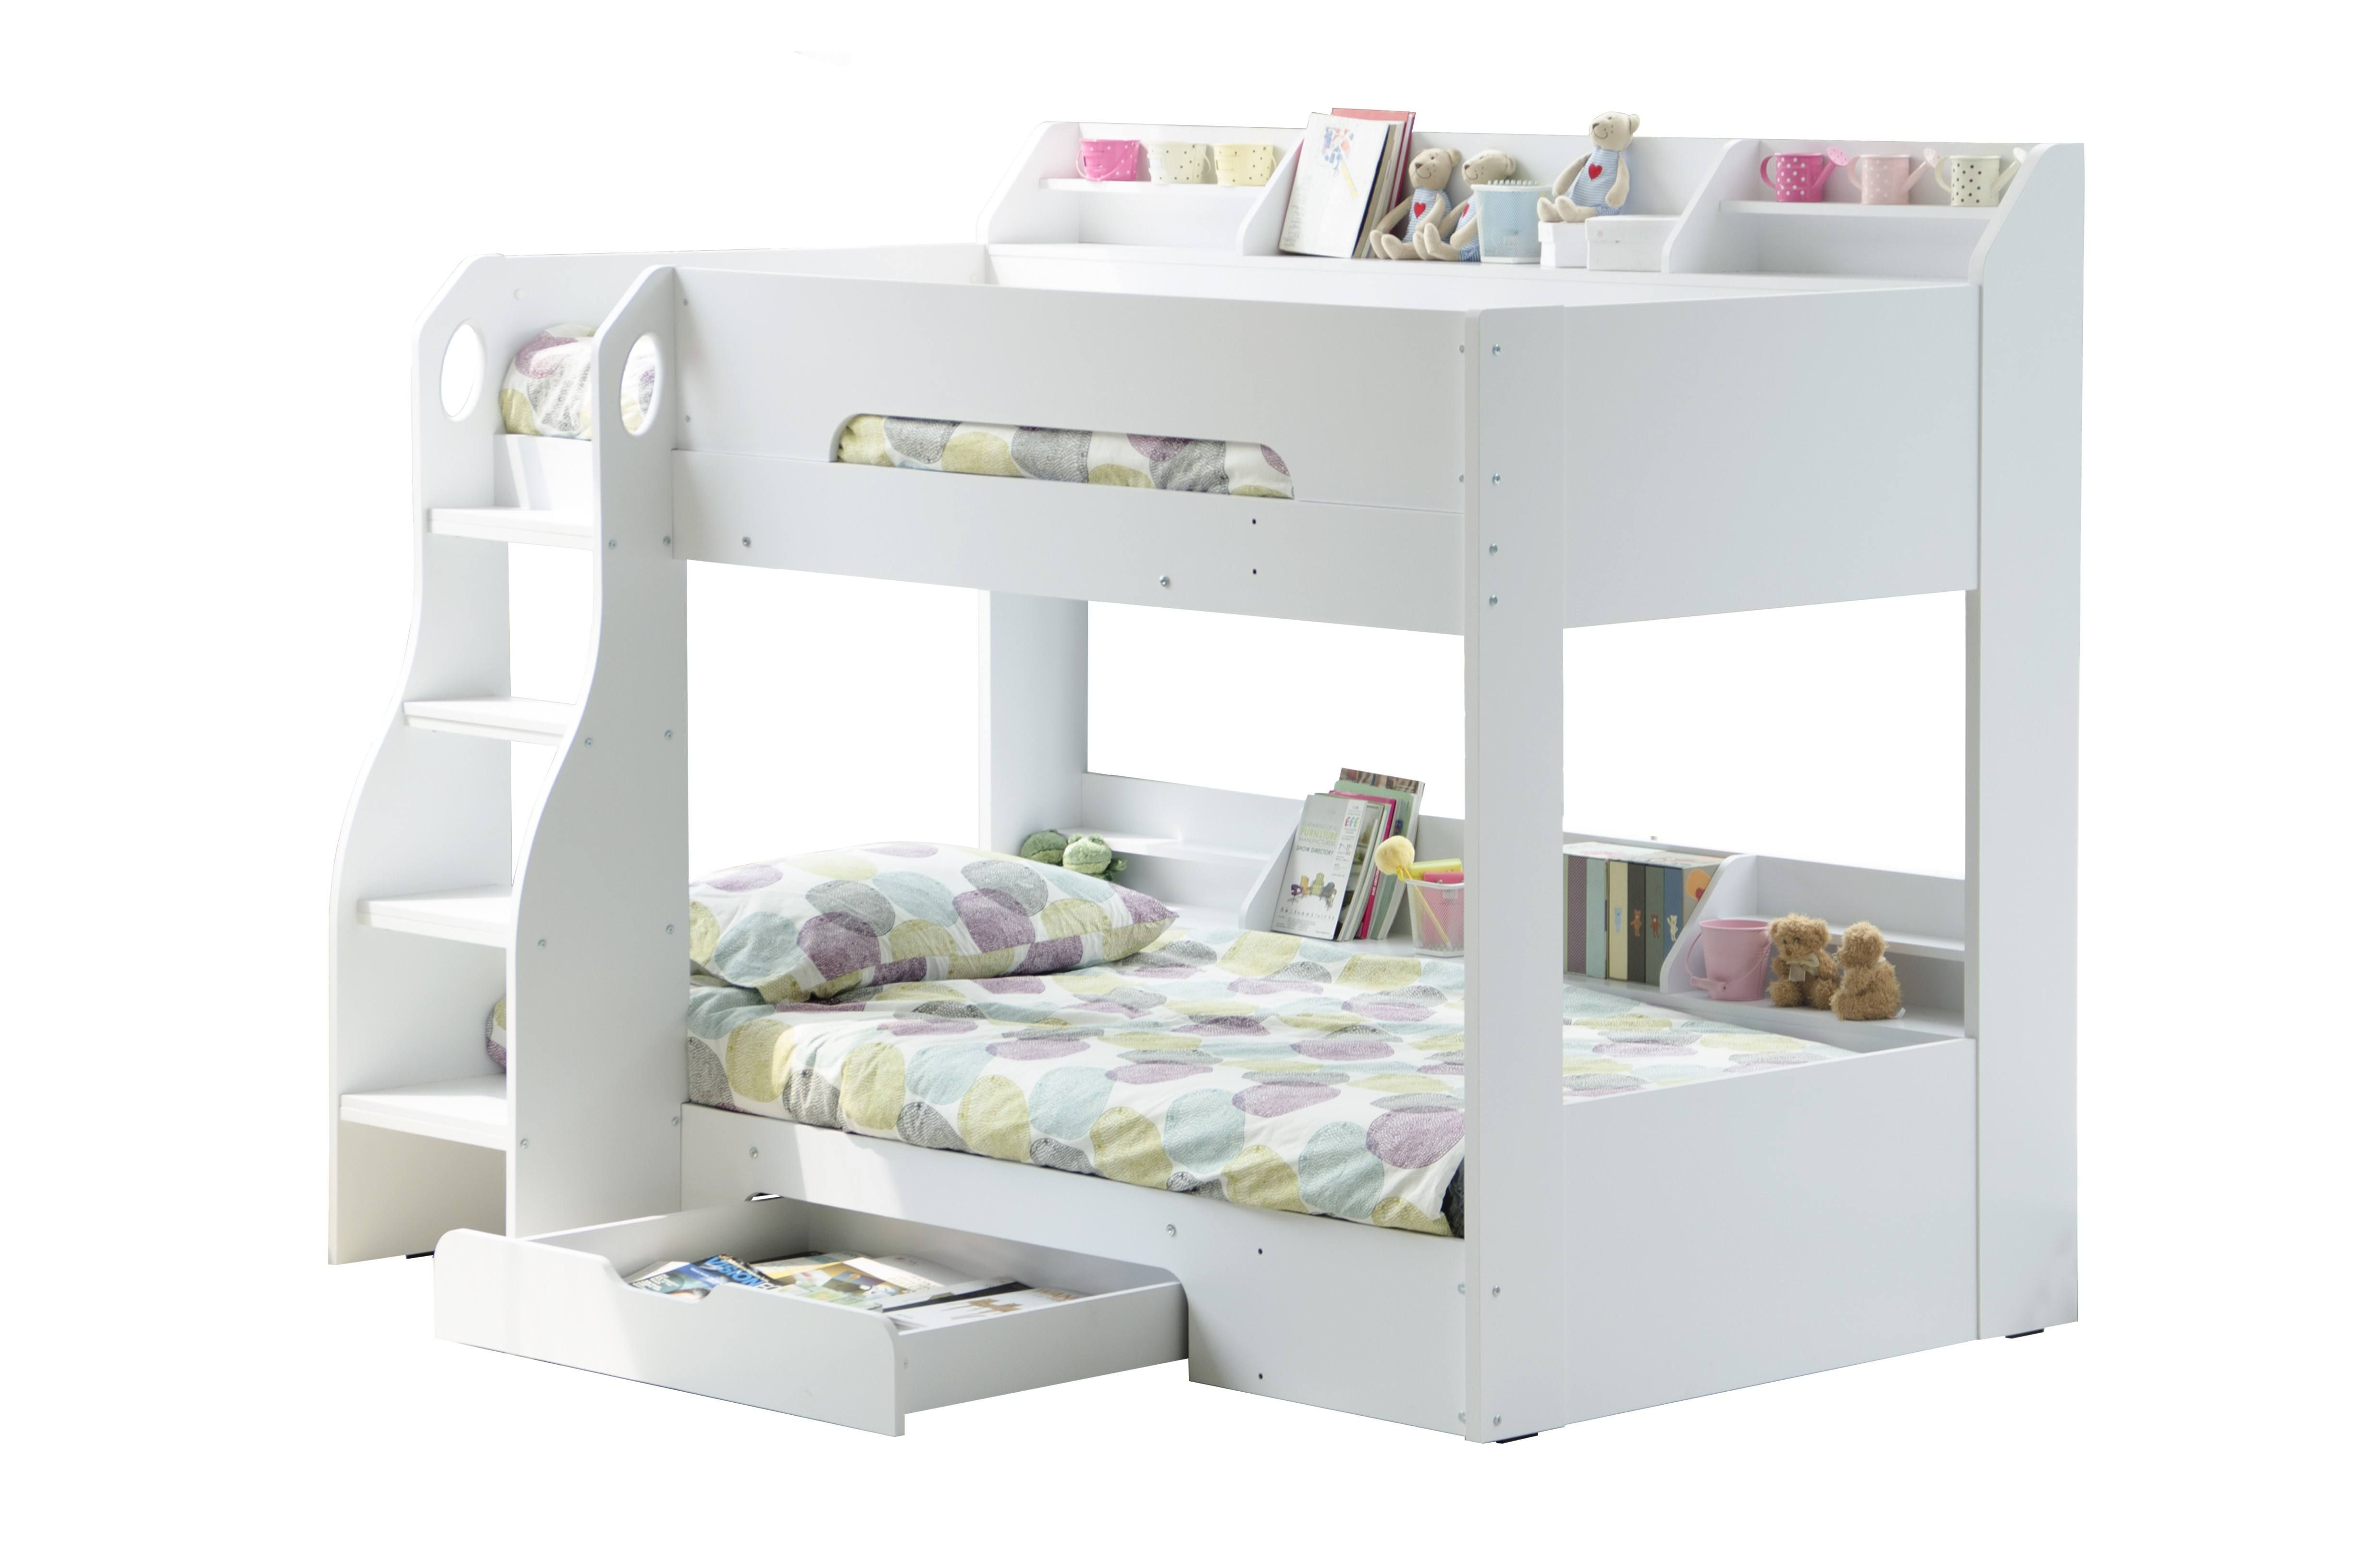 Flair Furnishings Flick Bunk Bed White White bunk beds